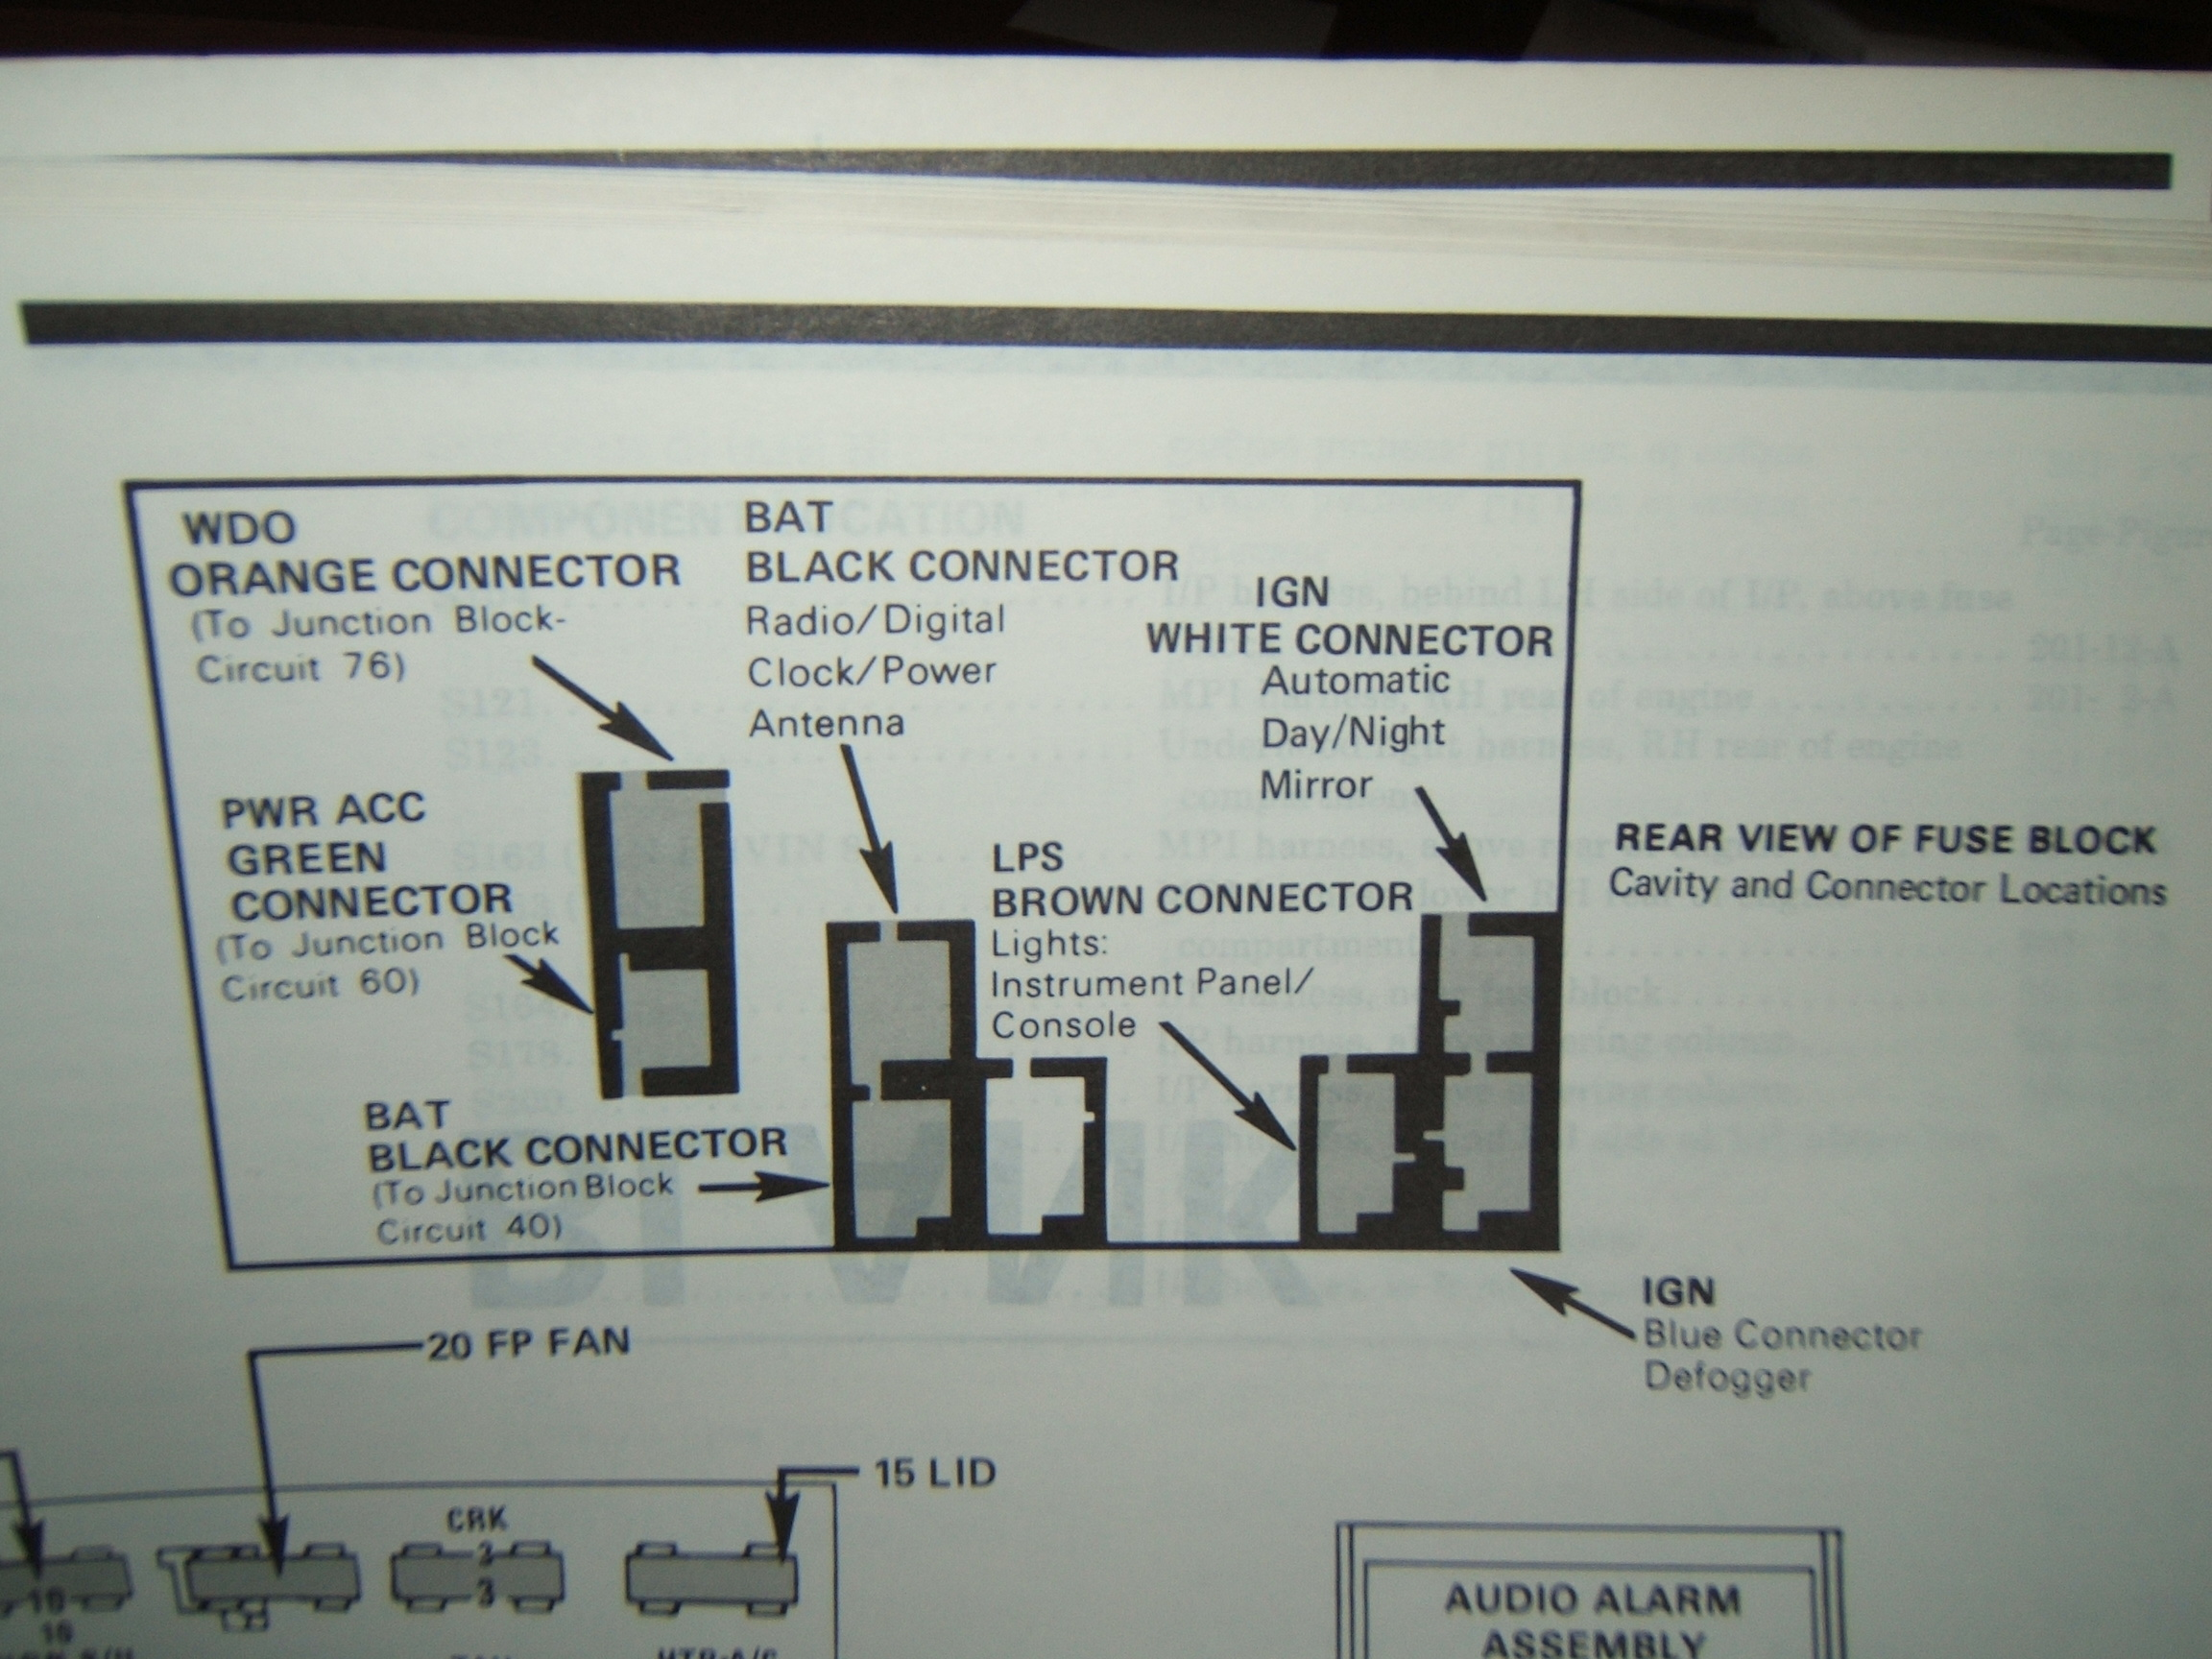 Tremendous 1986 Chevy Fuse Panel Diagram Wiring Library Wiring Cloud Timewinrebemohammedshrineorg